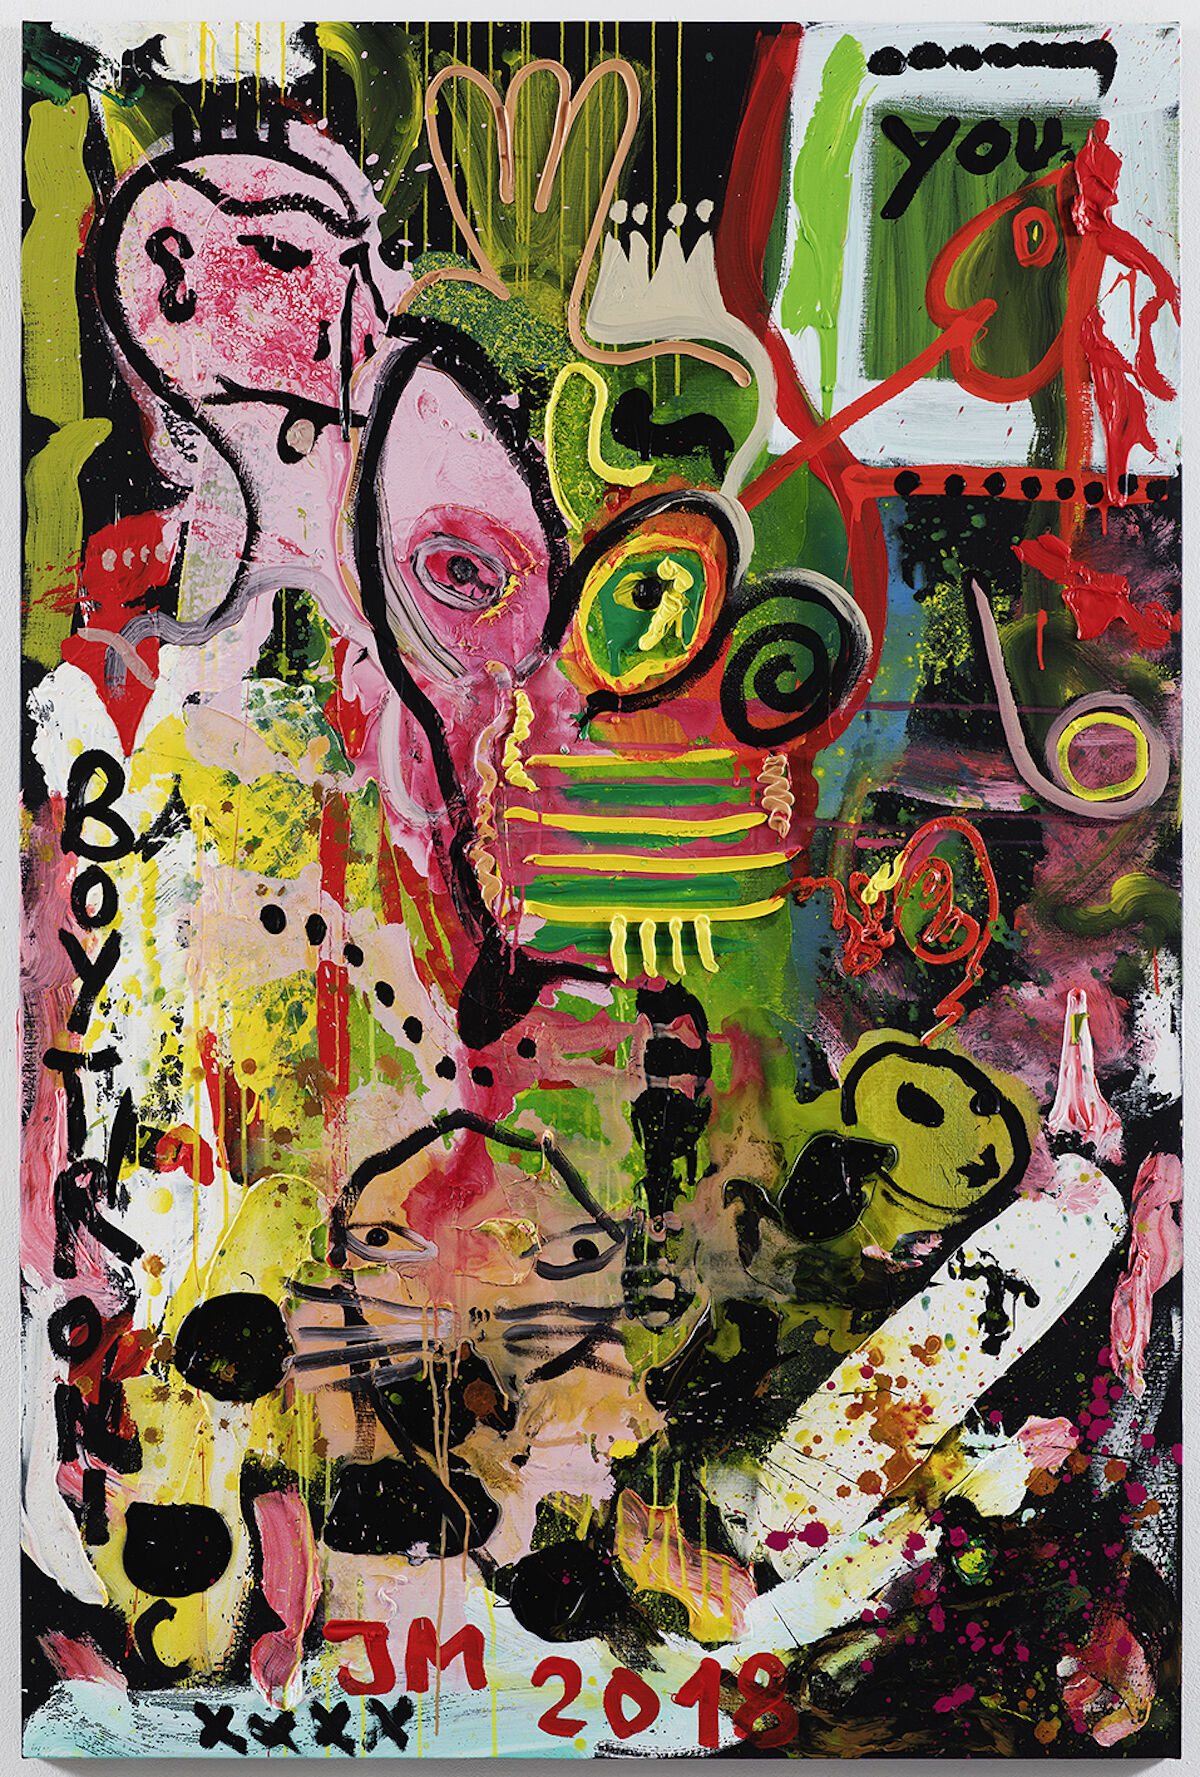 Jonathan Meese, GUIDO QUILLERZ A.R.T. IS BACK!, 2018. © Jonathan Meese. Courtesy of the artist and David Nolan Gallery, New York. Photo by Jan Bauer.